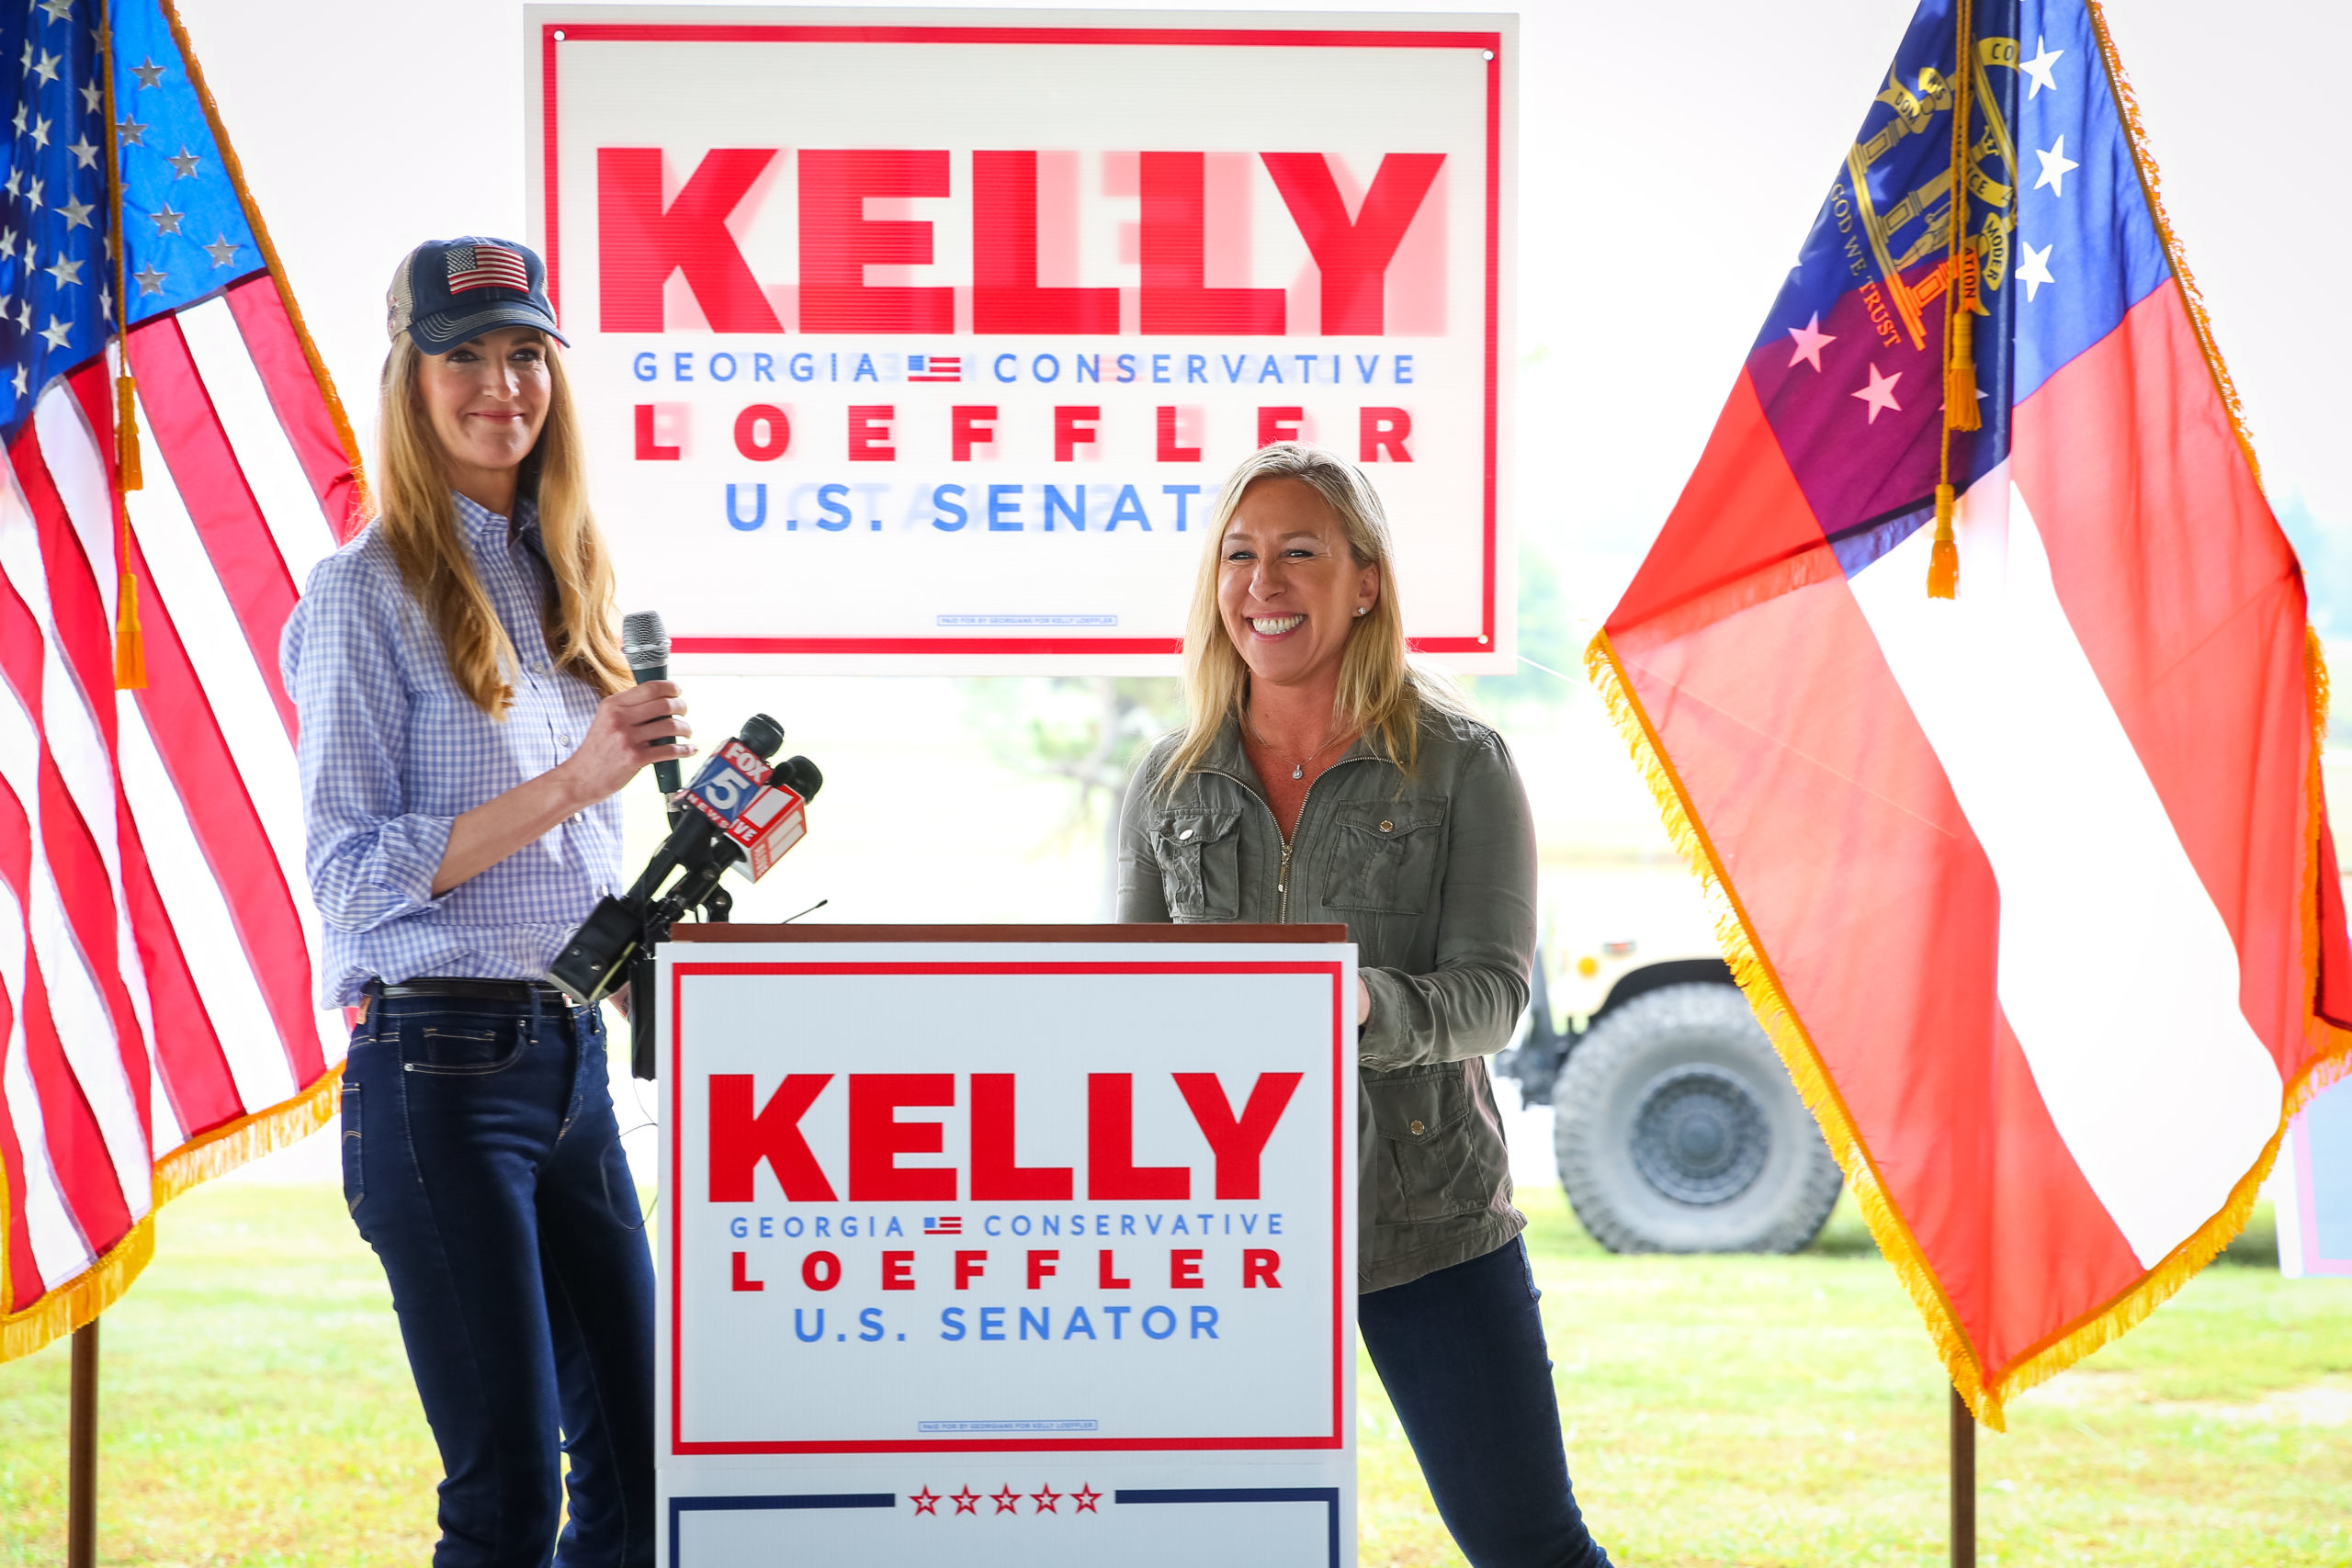 DALLAS, GA - OCTOBER 15: Georgia Republican House candidate Marjorie Taylor Greene holds a joint press conference with U.S. Sen. Kelly Loeffler (R-GA) during which Greene endorsed Loeffler on October 15, 2020 in Dallas, Georgia. (Photo by Dustin Chambers/Getty Images)